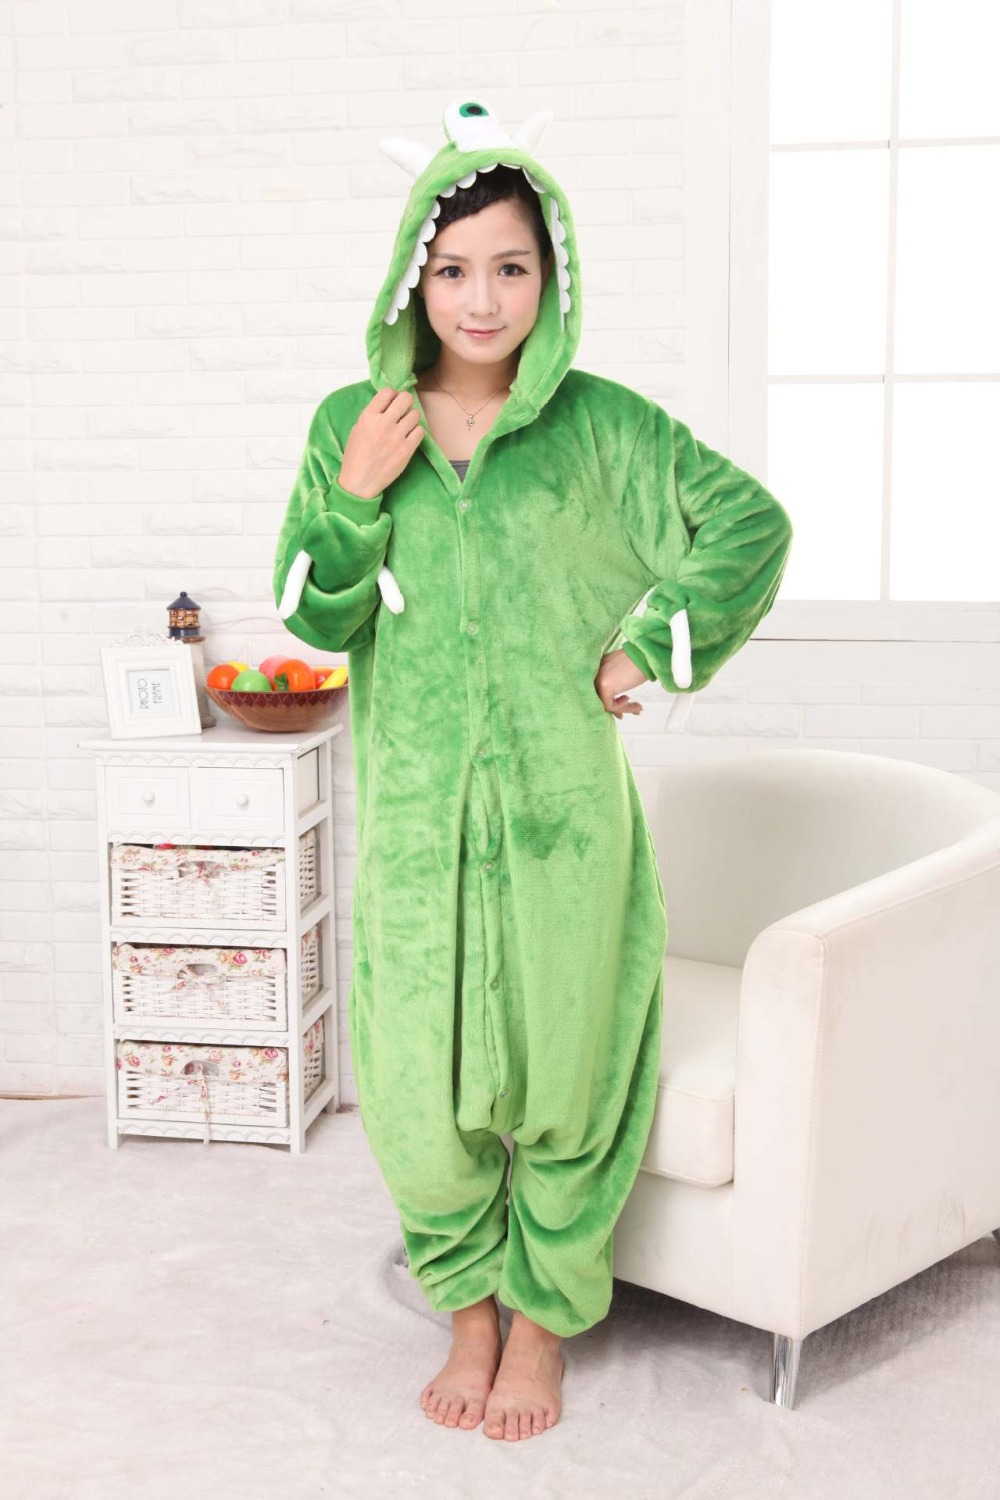 Monsters, Inc. Footed One Piece Pajamas Onesie Cosplay  Costume Flannel Cartoon Animal Adult Male Lady Couple Siamese Nightwear